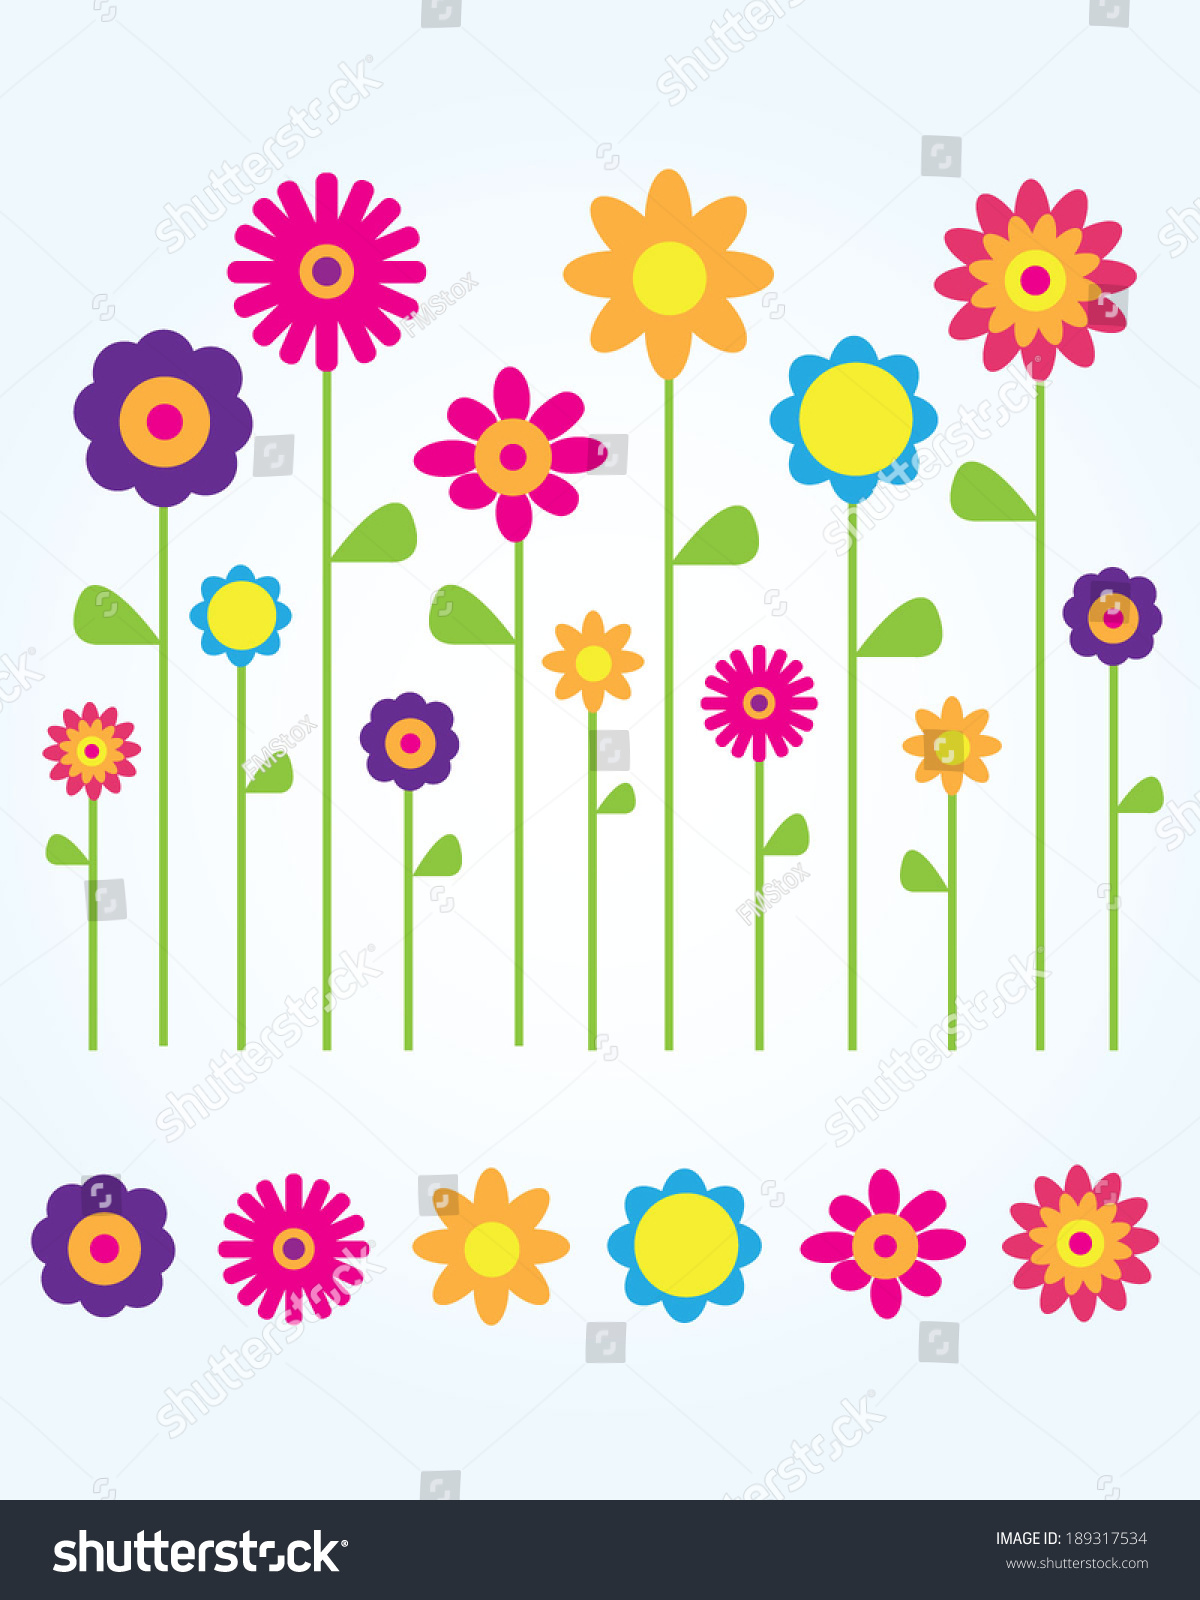 Cute spring flower - A Collection Of Cute And Fun Vector Spring Flowers